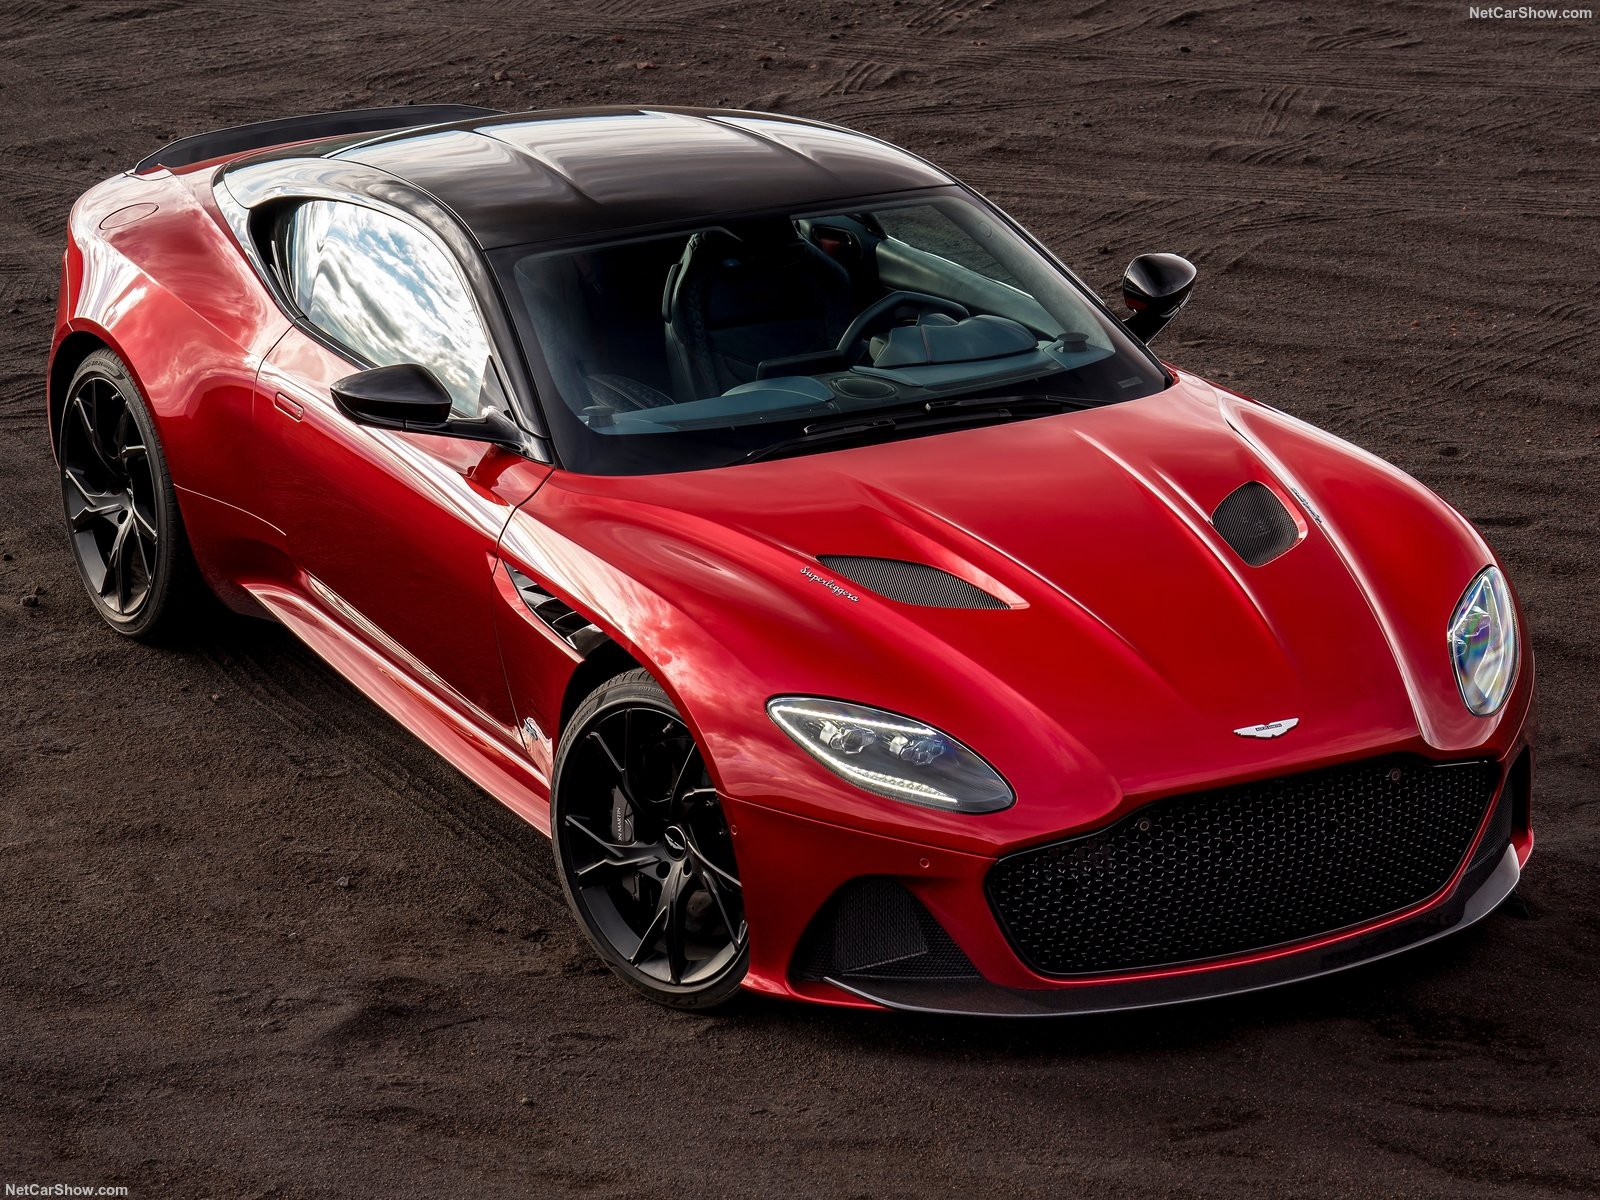 Will The Aston Martin Dbs Amr Be More Powerful Than The One 77 By Drivetribe Medium